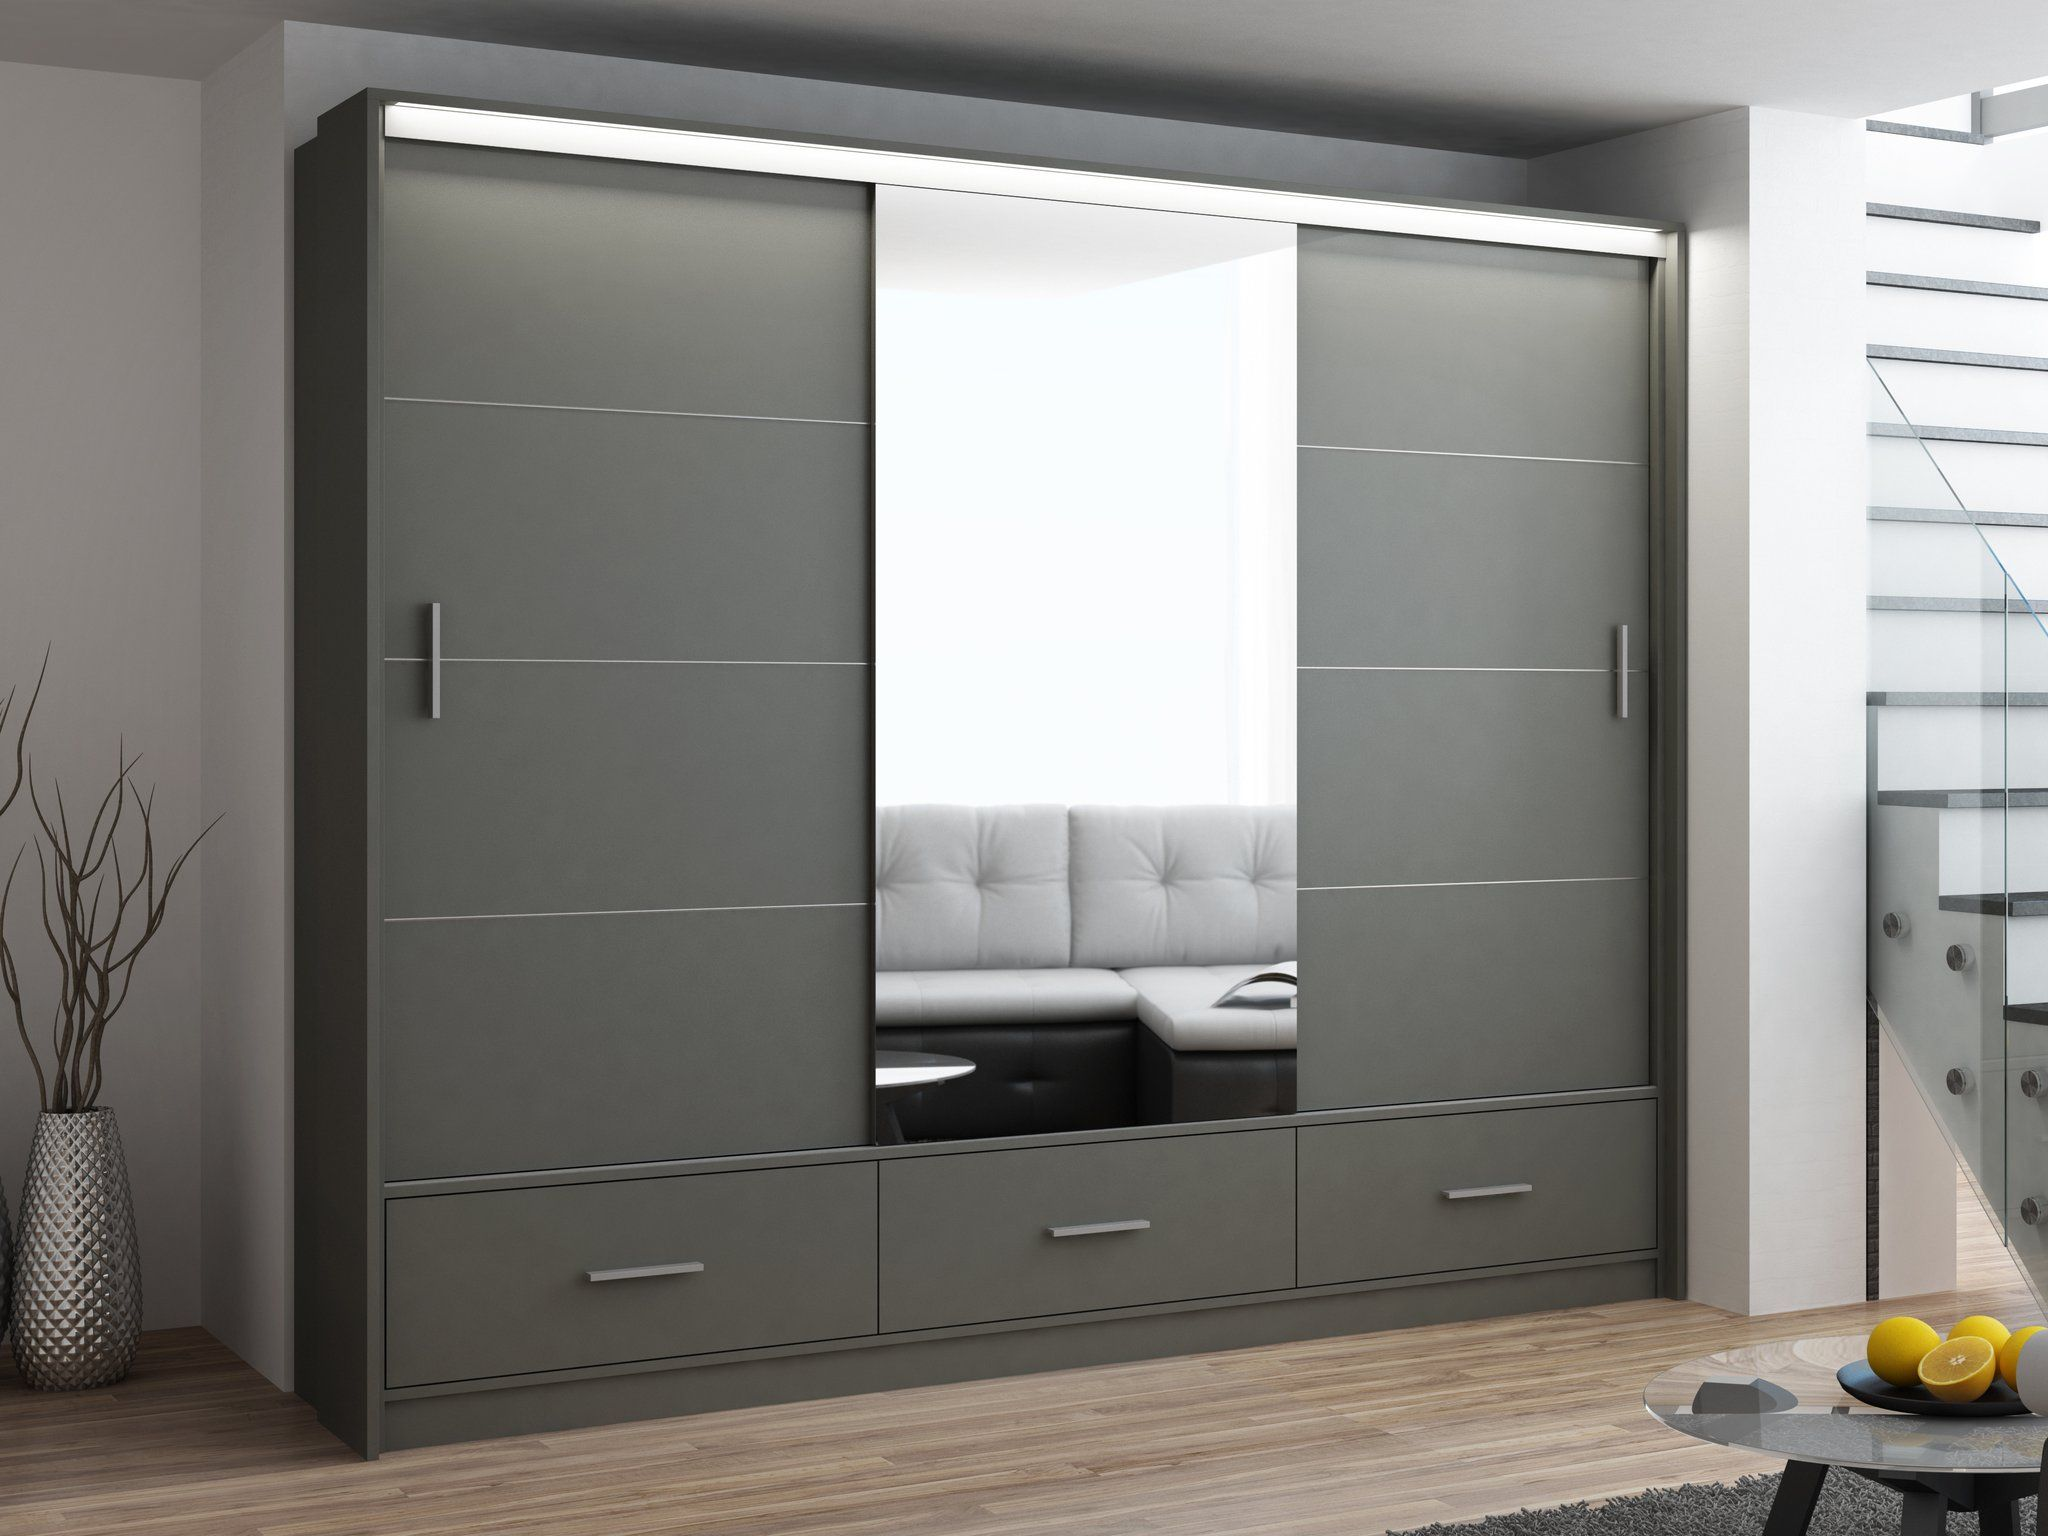 marsylia grey matt mirrored sliding door wardrobe 255cm –